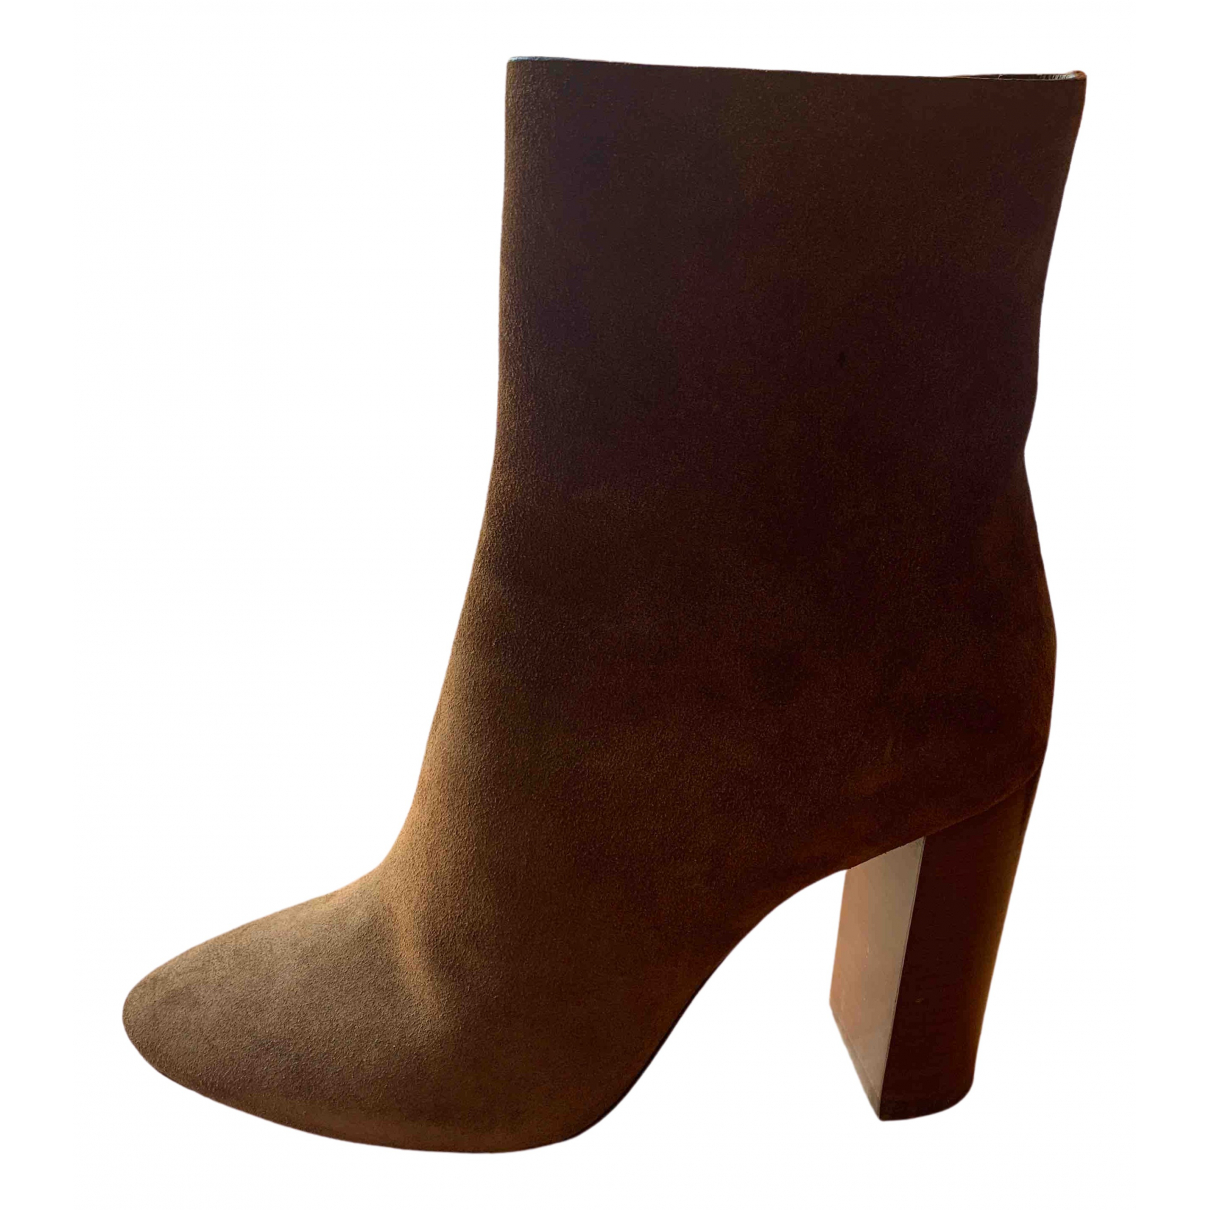 Saint Laurent Loulou Brown Suede Ankle boots for Women 36 EU